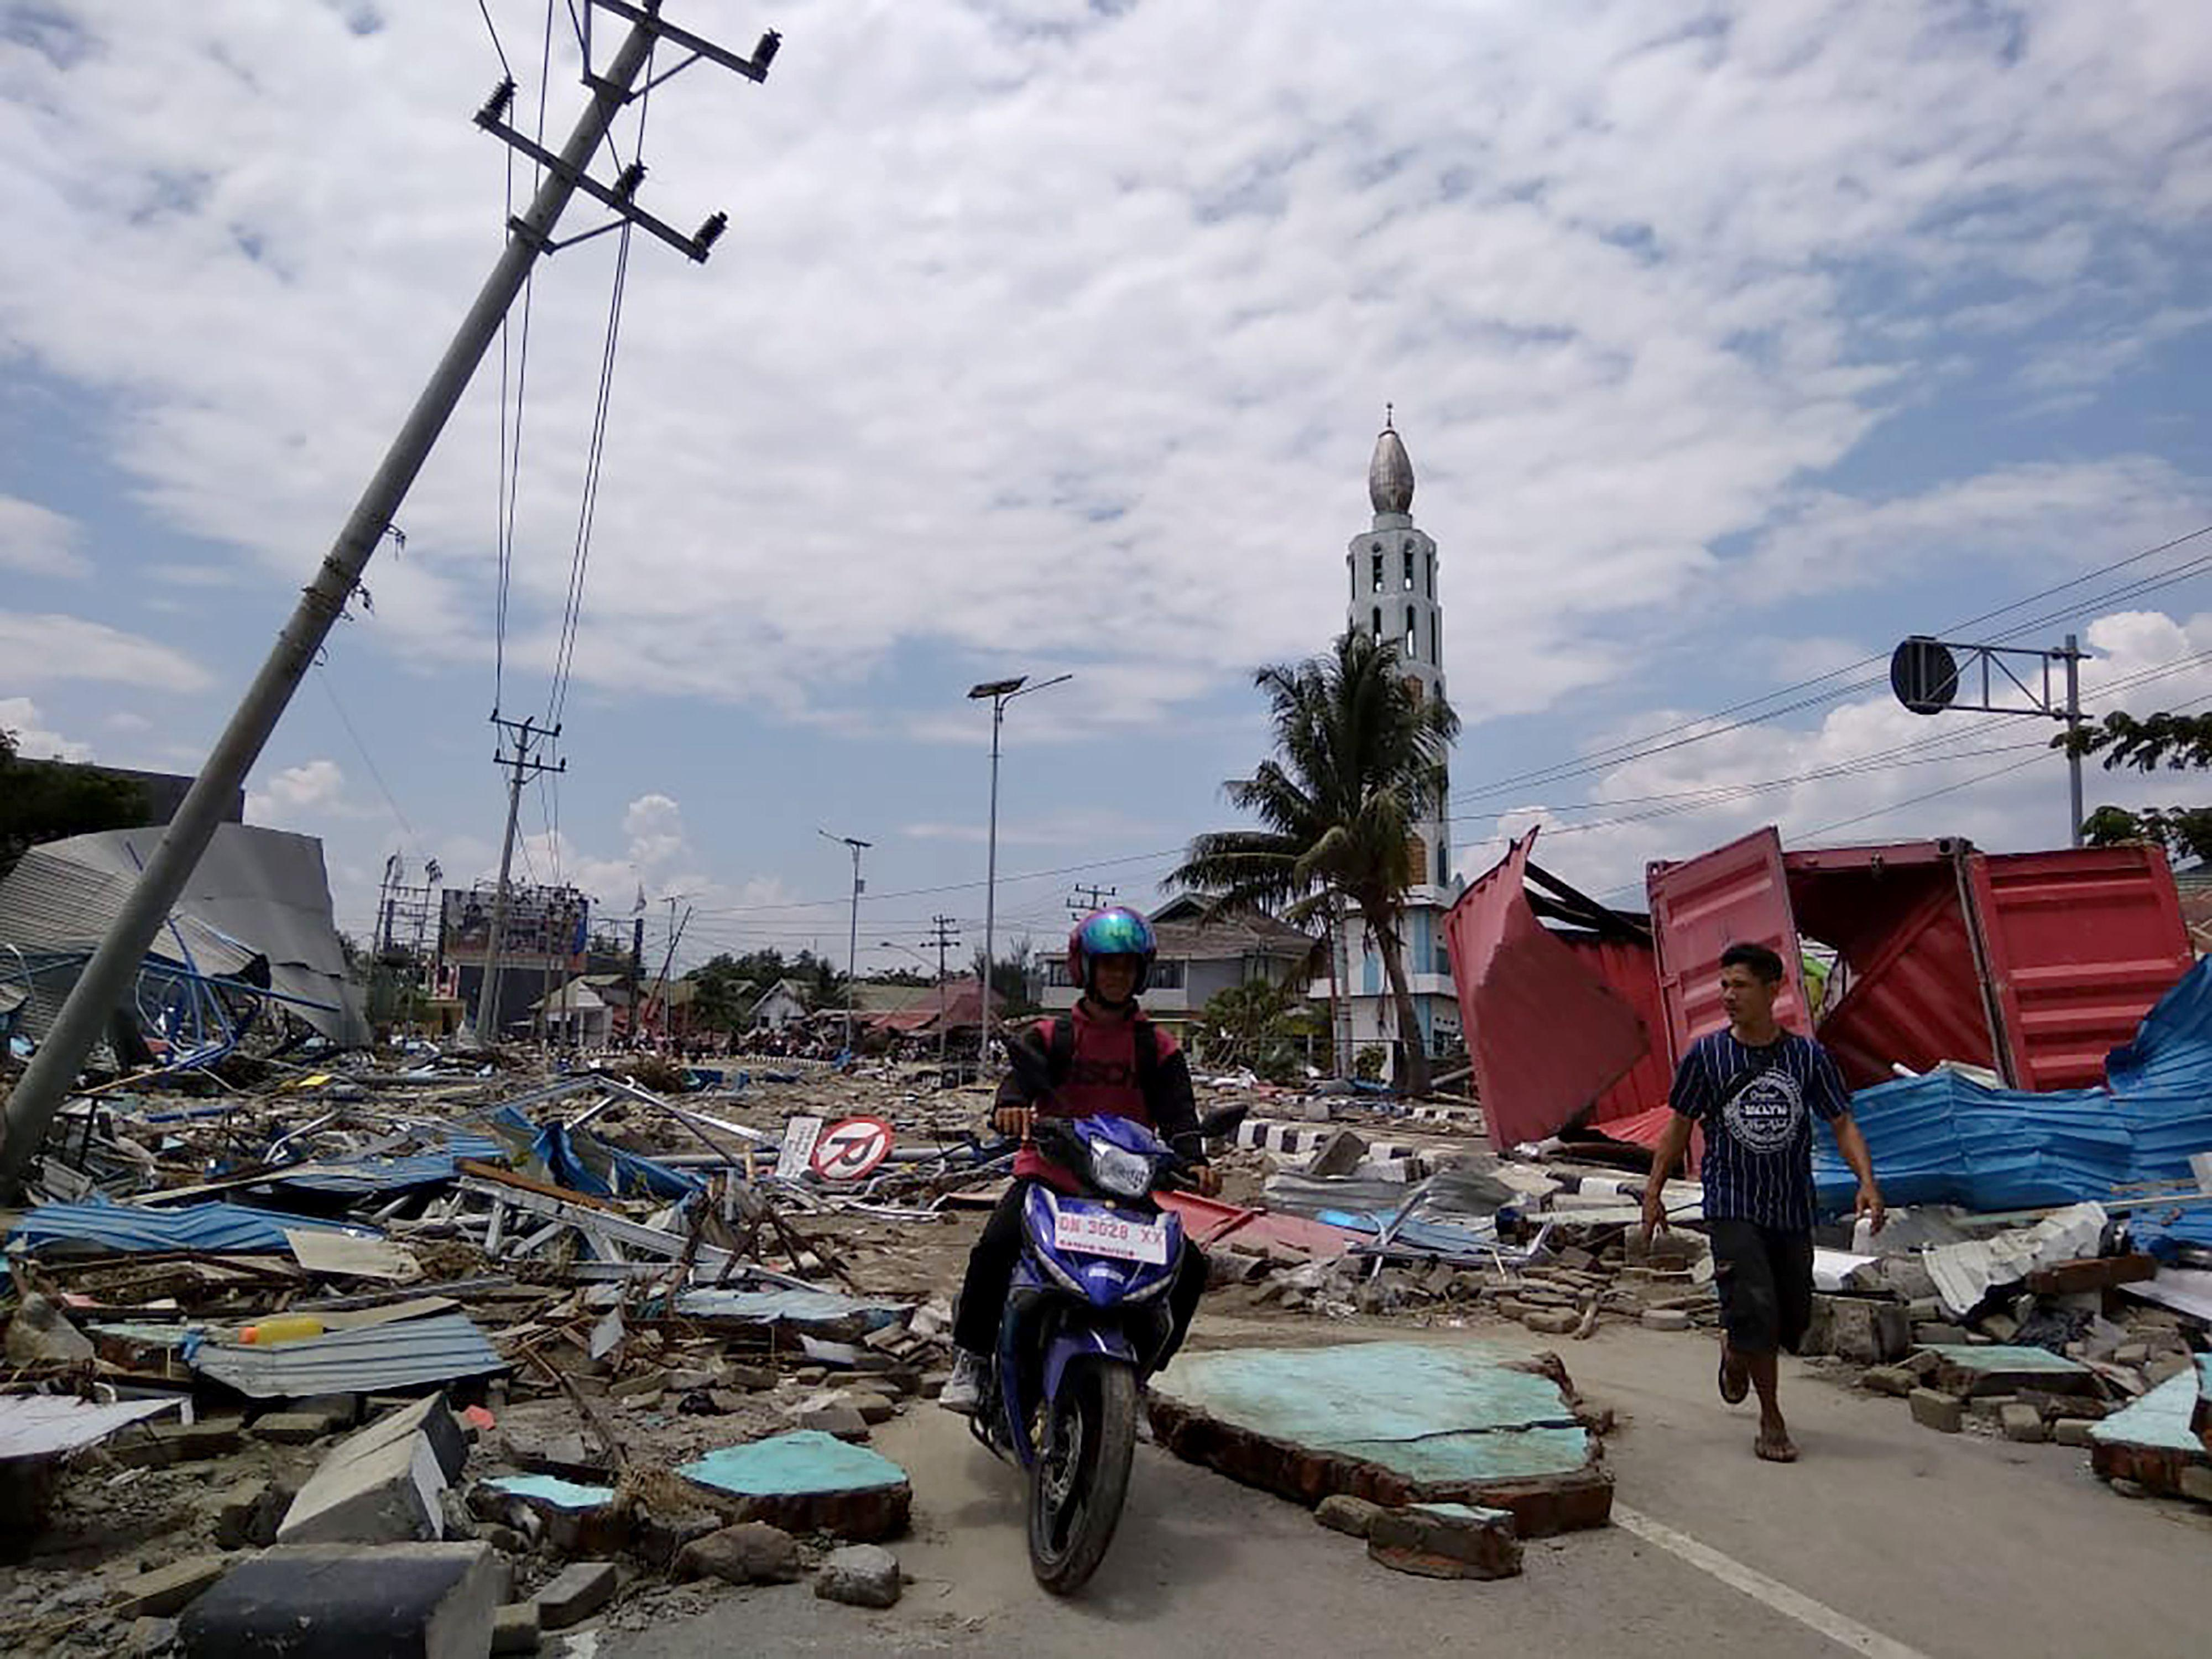 Residents make their way along a street full of debris after an earthquake and tsunami hit Palu.